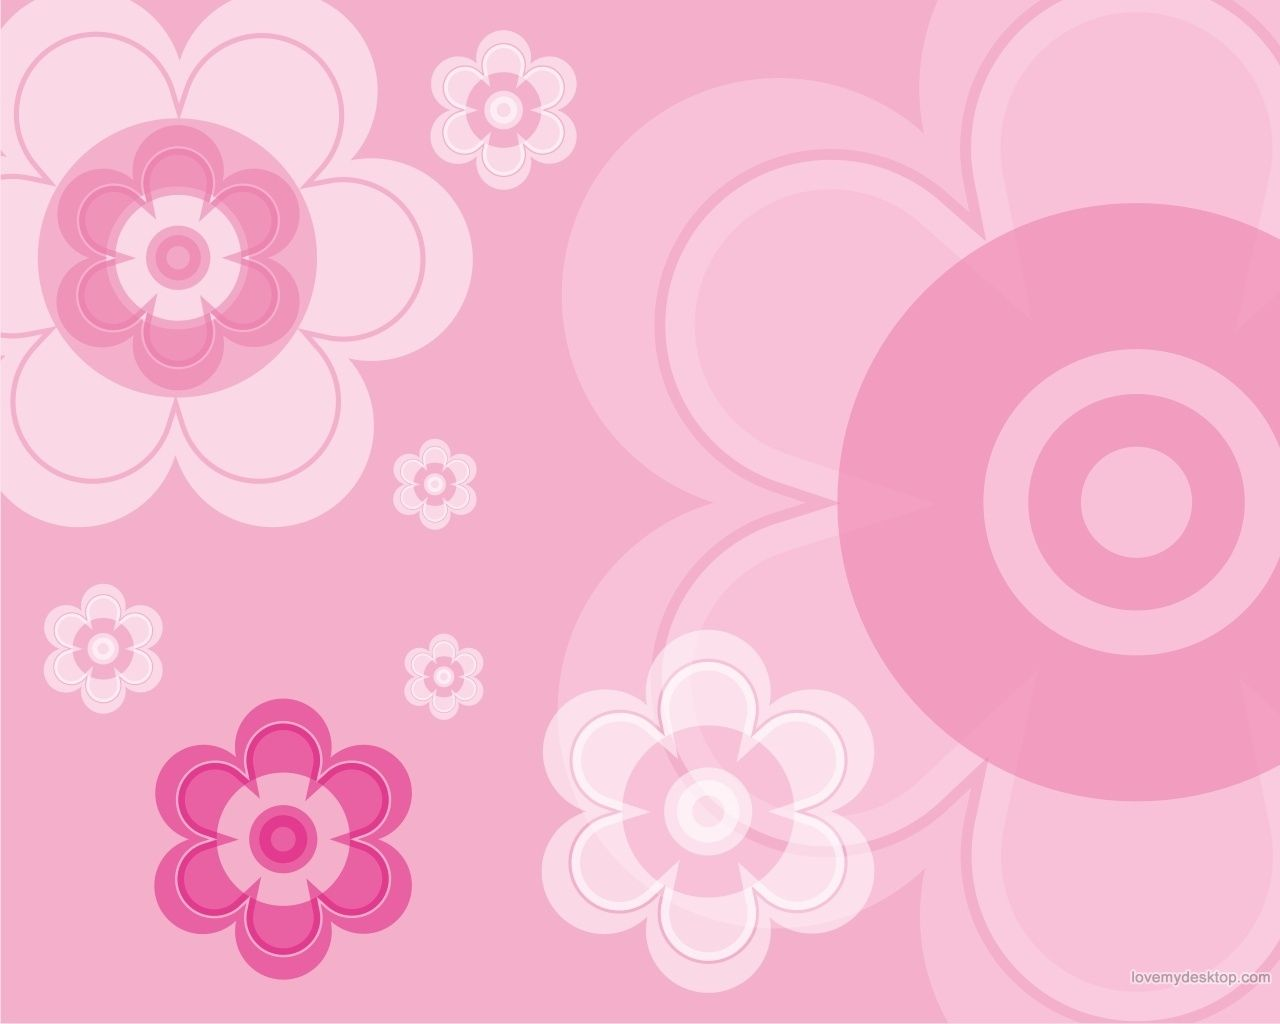 Flowers Desktop Backgrounds - One HD Wallpaper Pictures ...